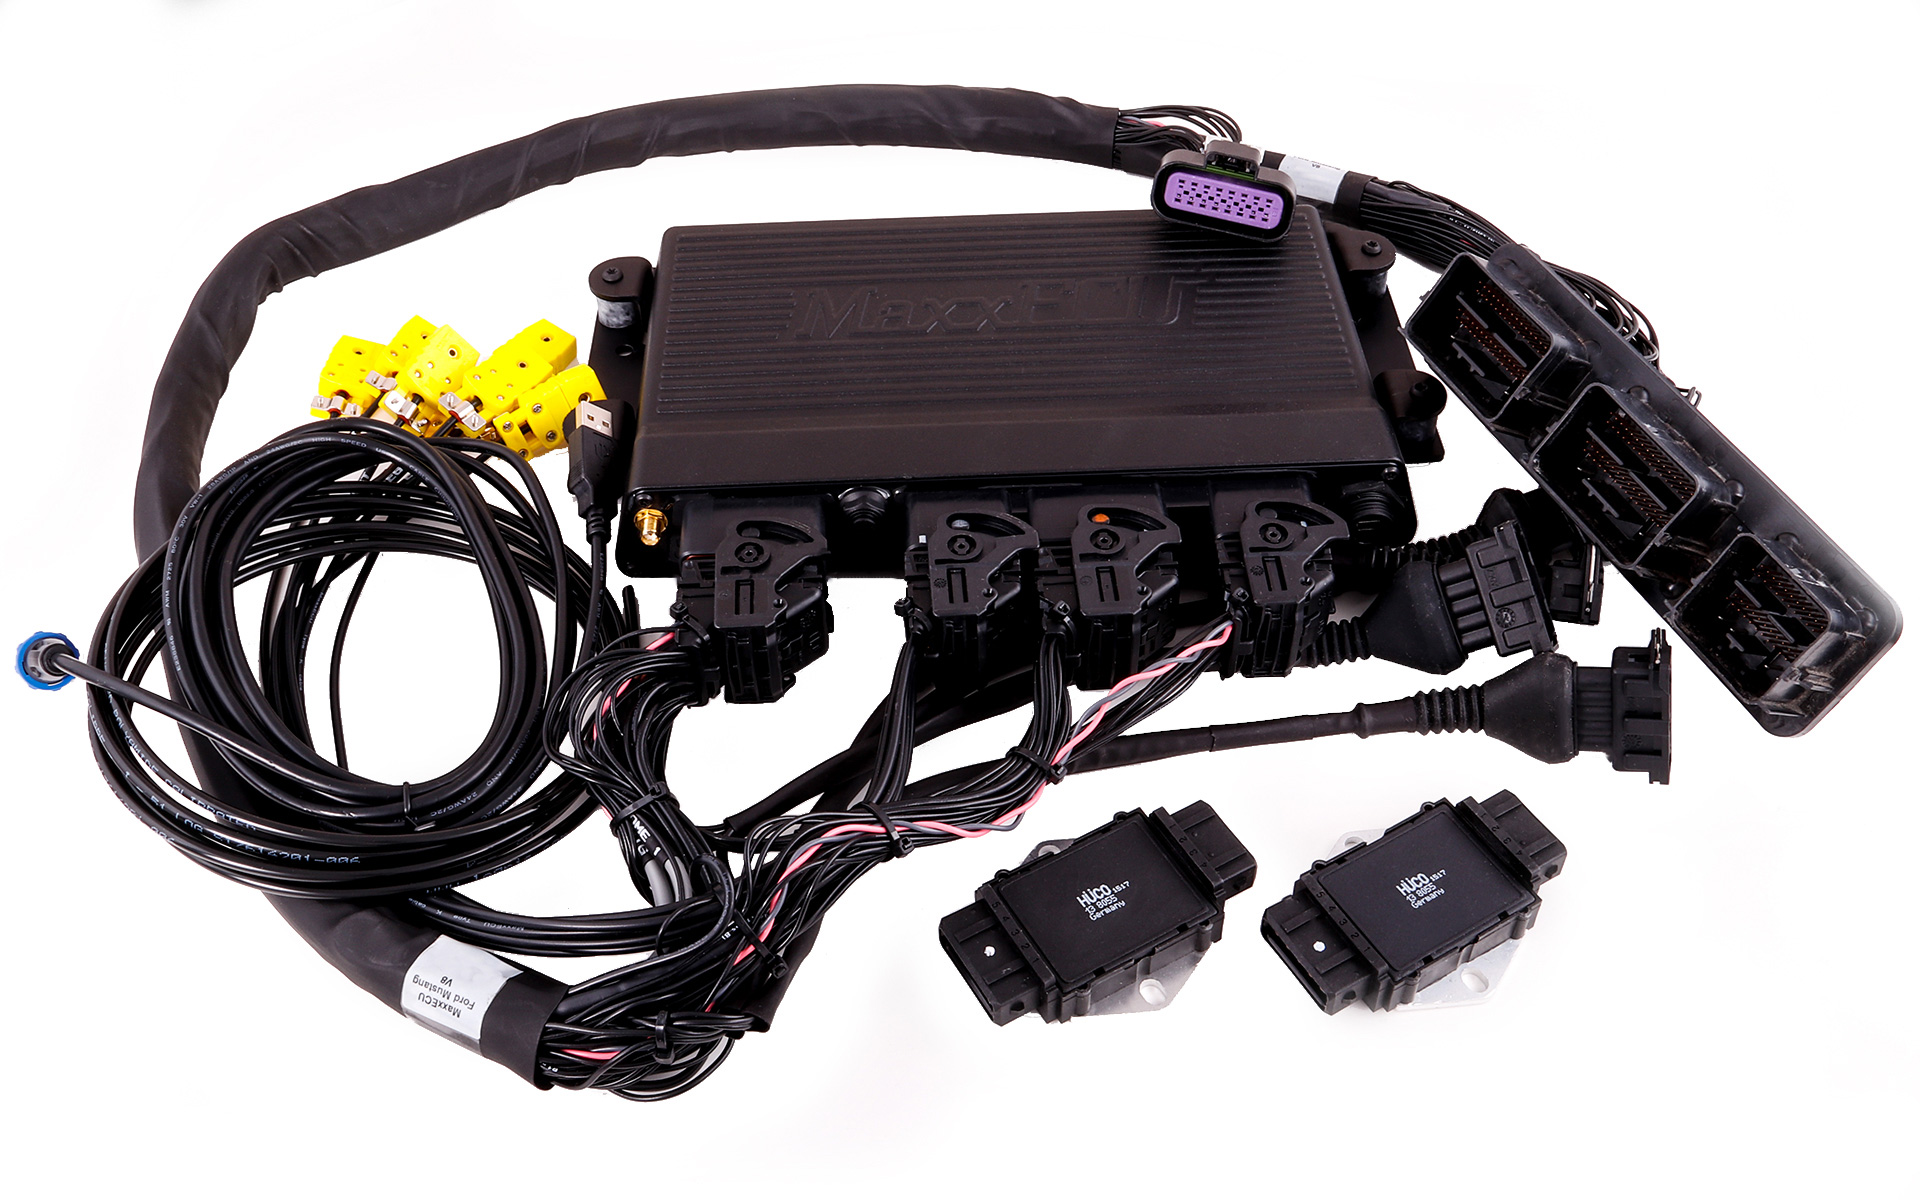 MaxxECU PRO Plugin ECU for Ford Mustang 2011 - 2014